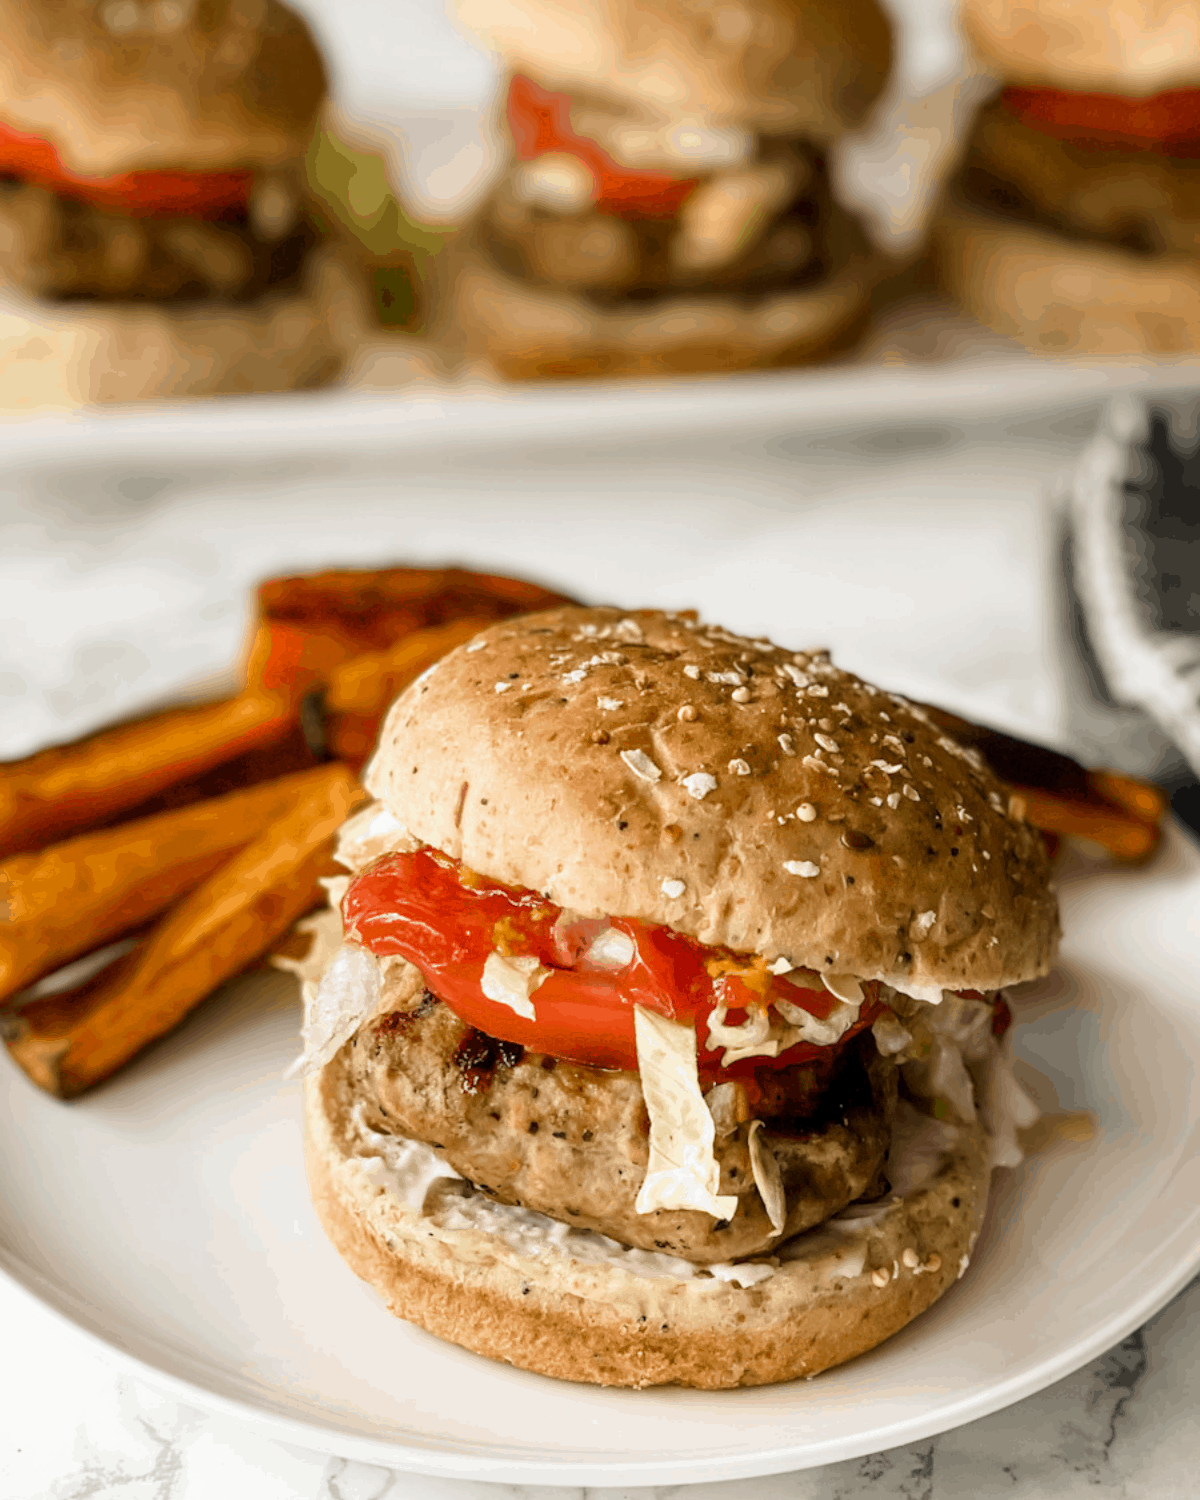 the best turkey burger recipe. A turkey burger on a whole wheat roll with sweet potato fries in the back.